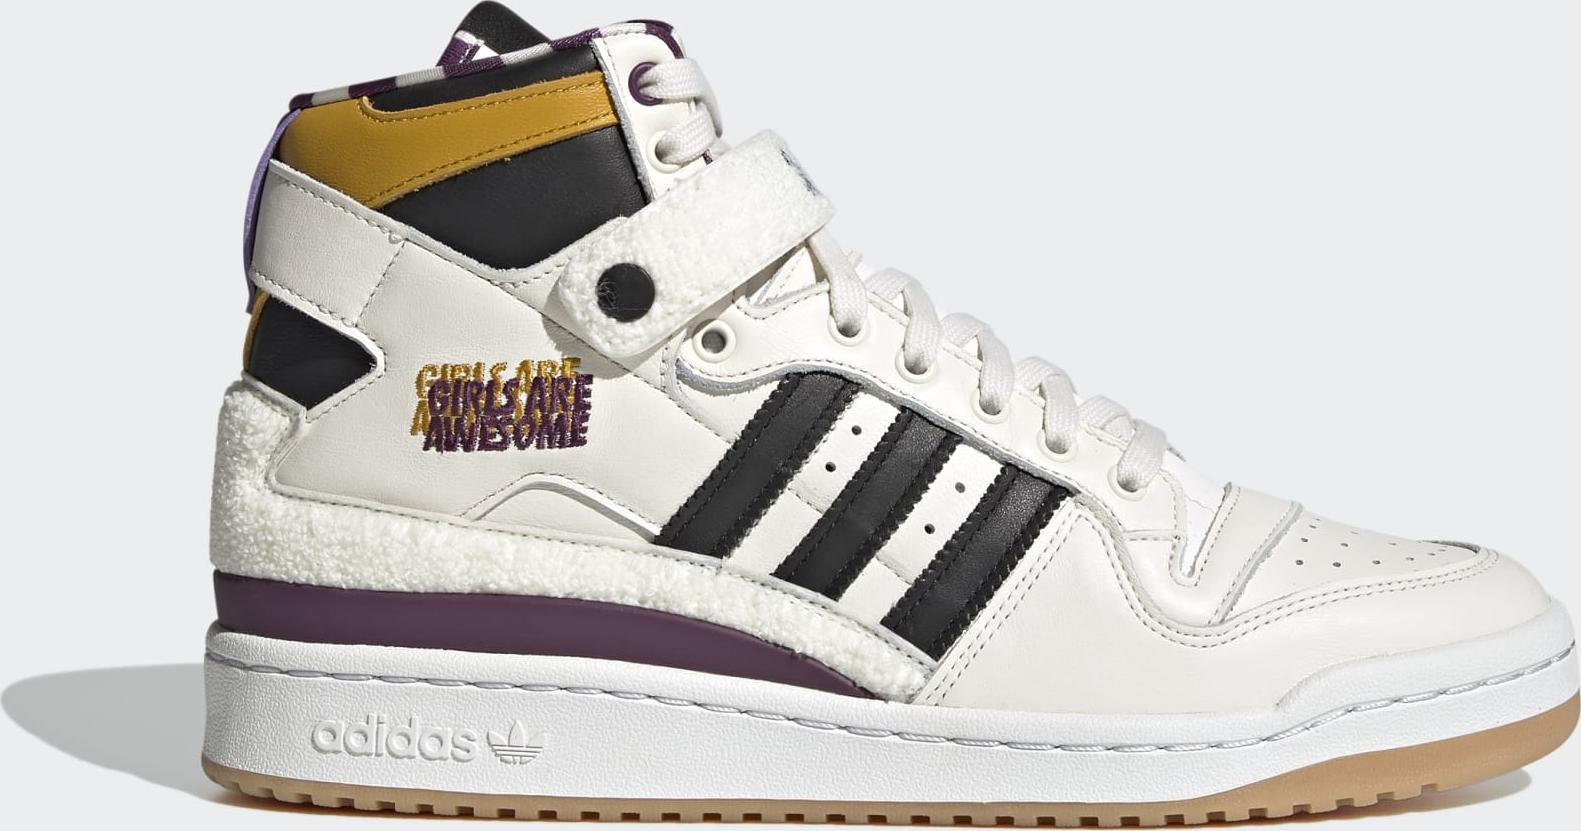 adidas Forum 84 Hi Girls Are Awesome Chalk White / Core Black / Purple Beauty